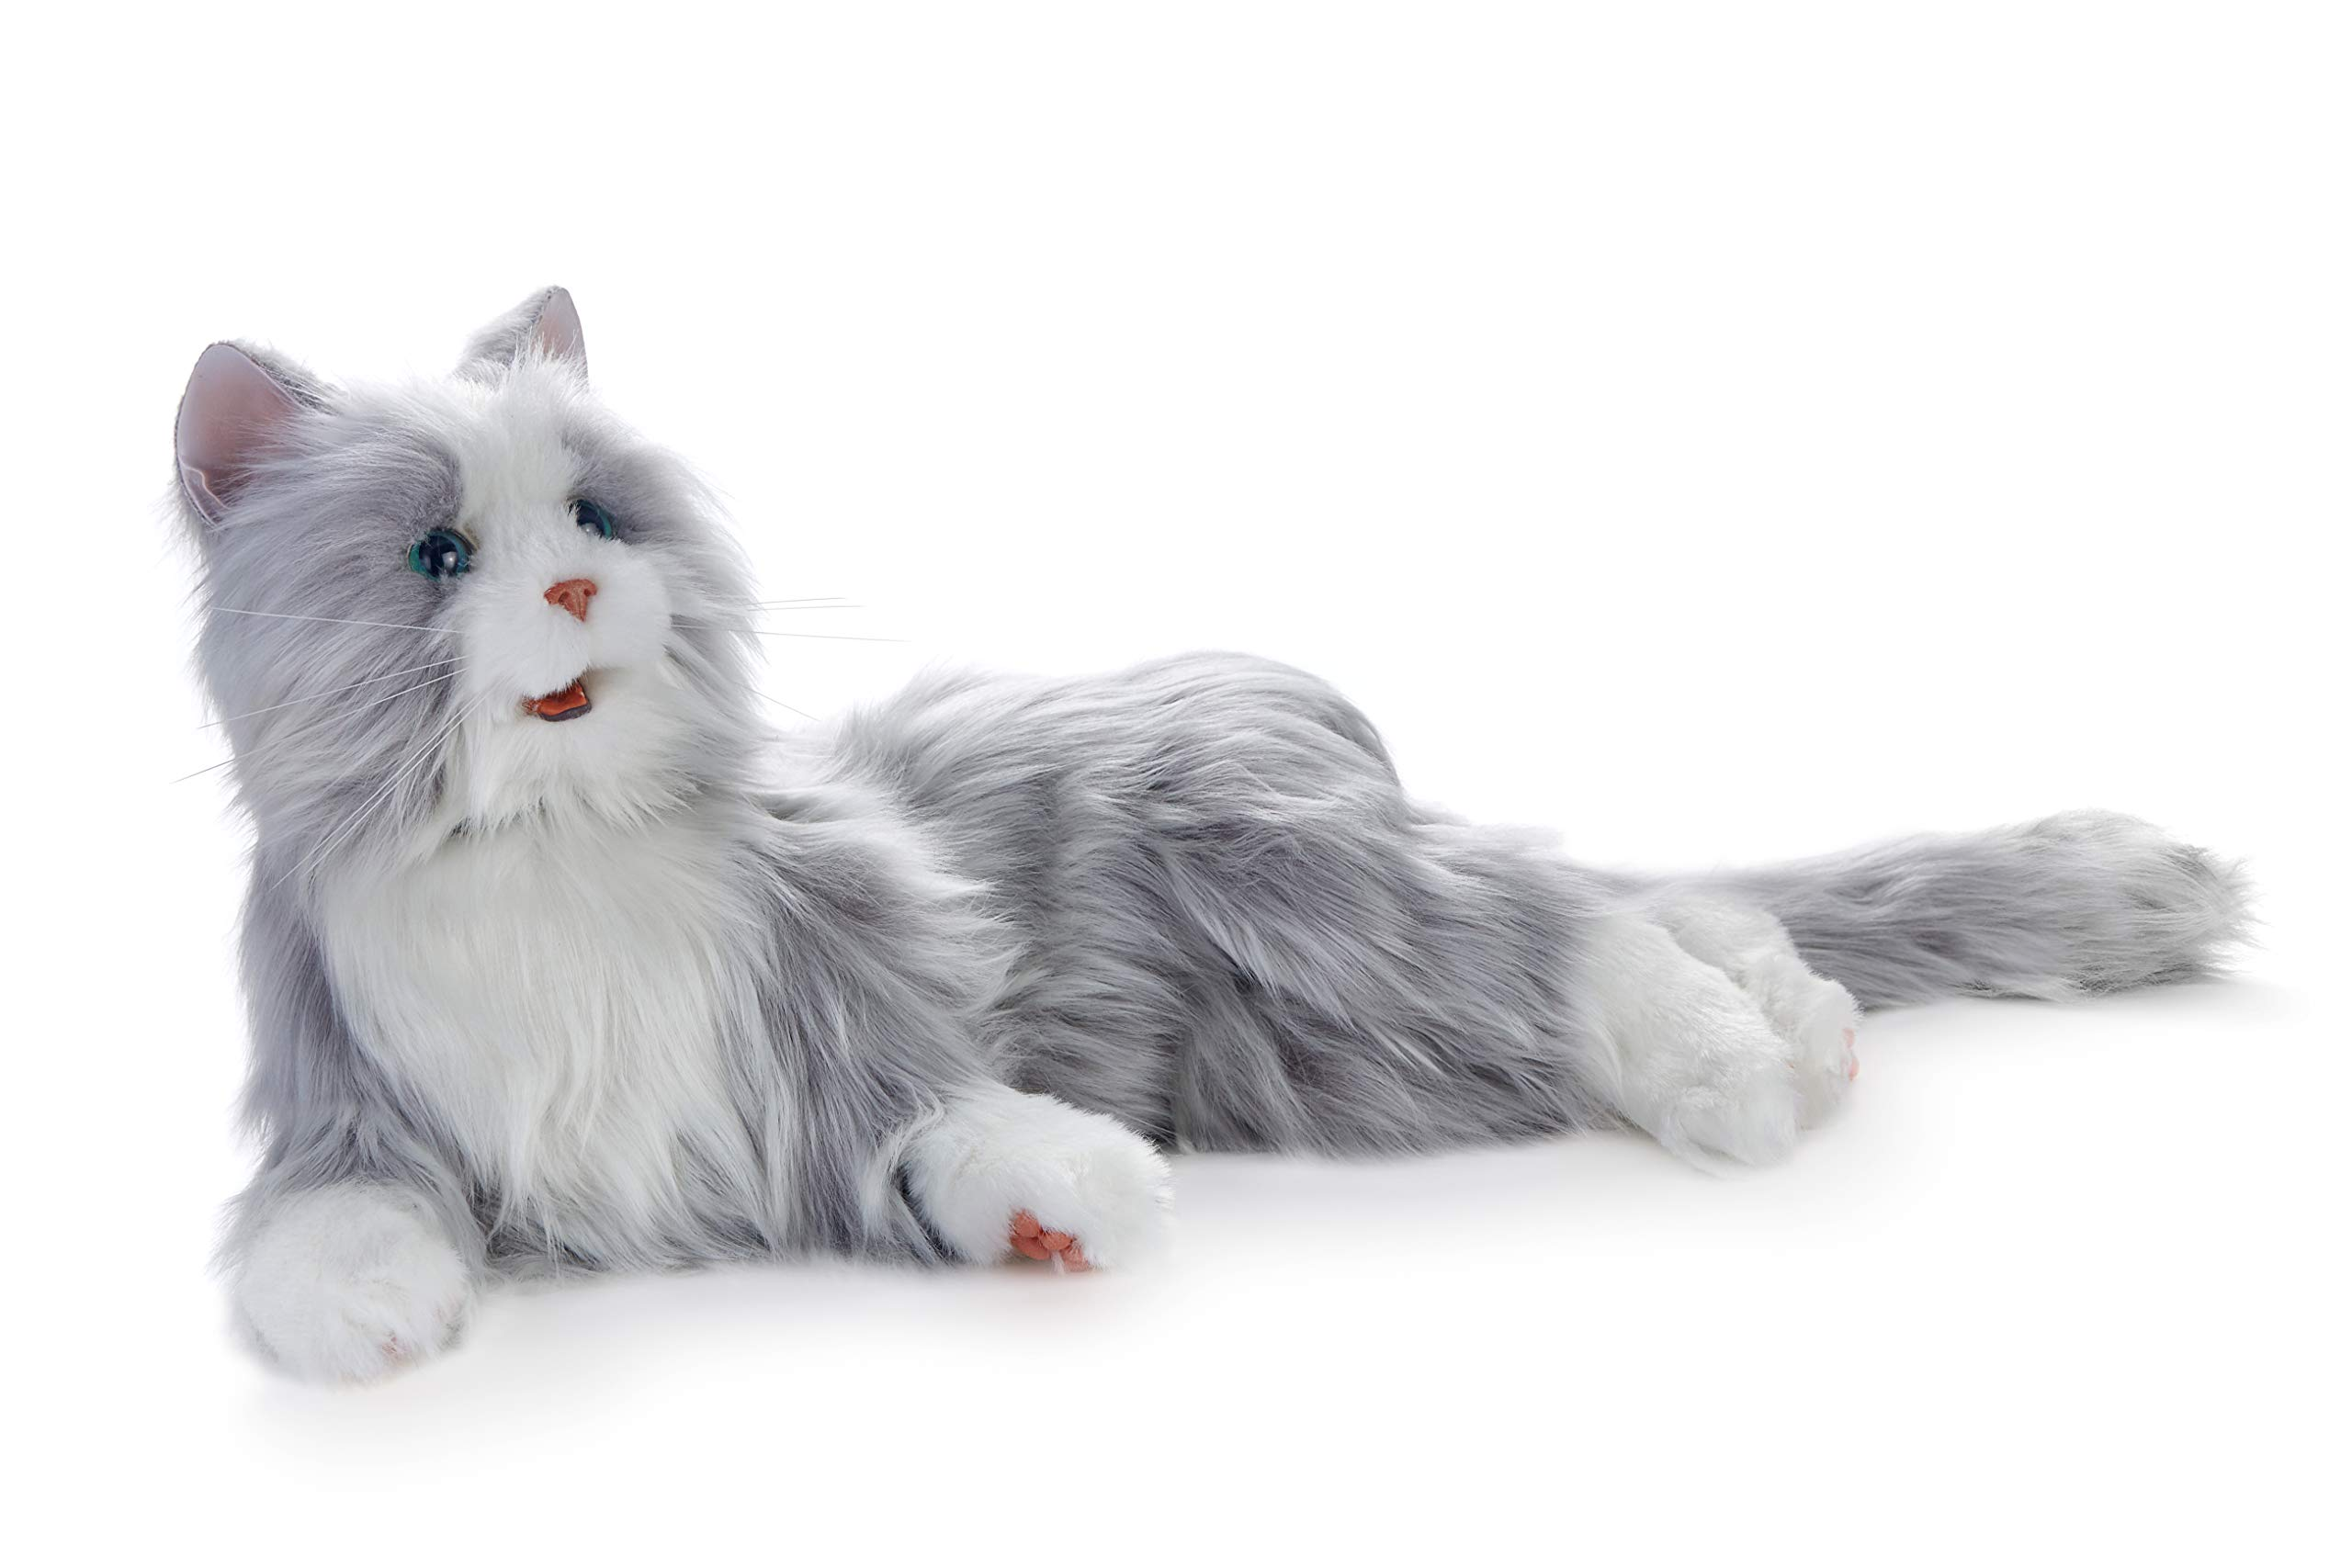 Joy for All Robotic Reclining Silver Grey Cat - for Ages 2 to 102 by Memorable Pets (Image #8)